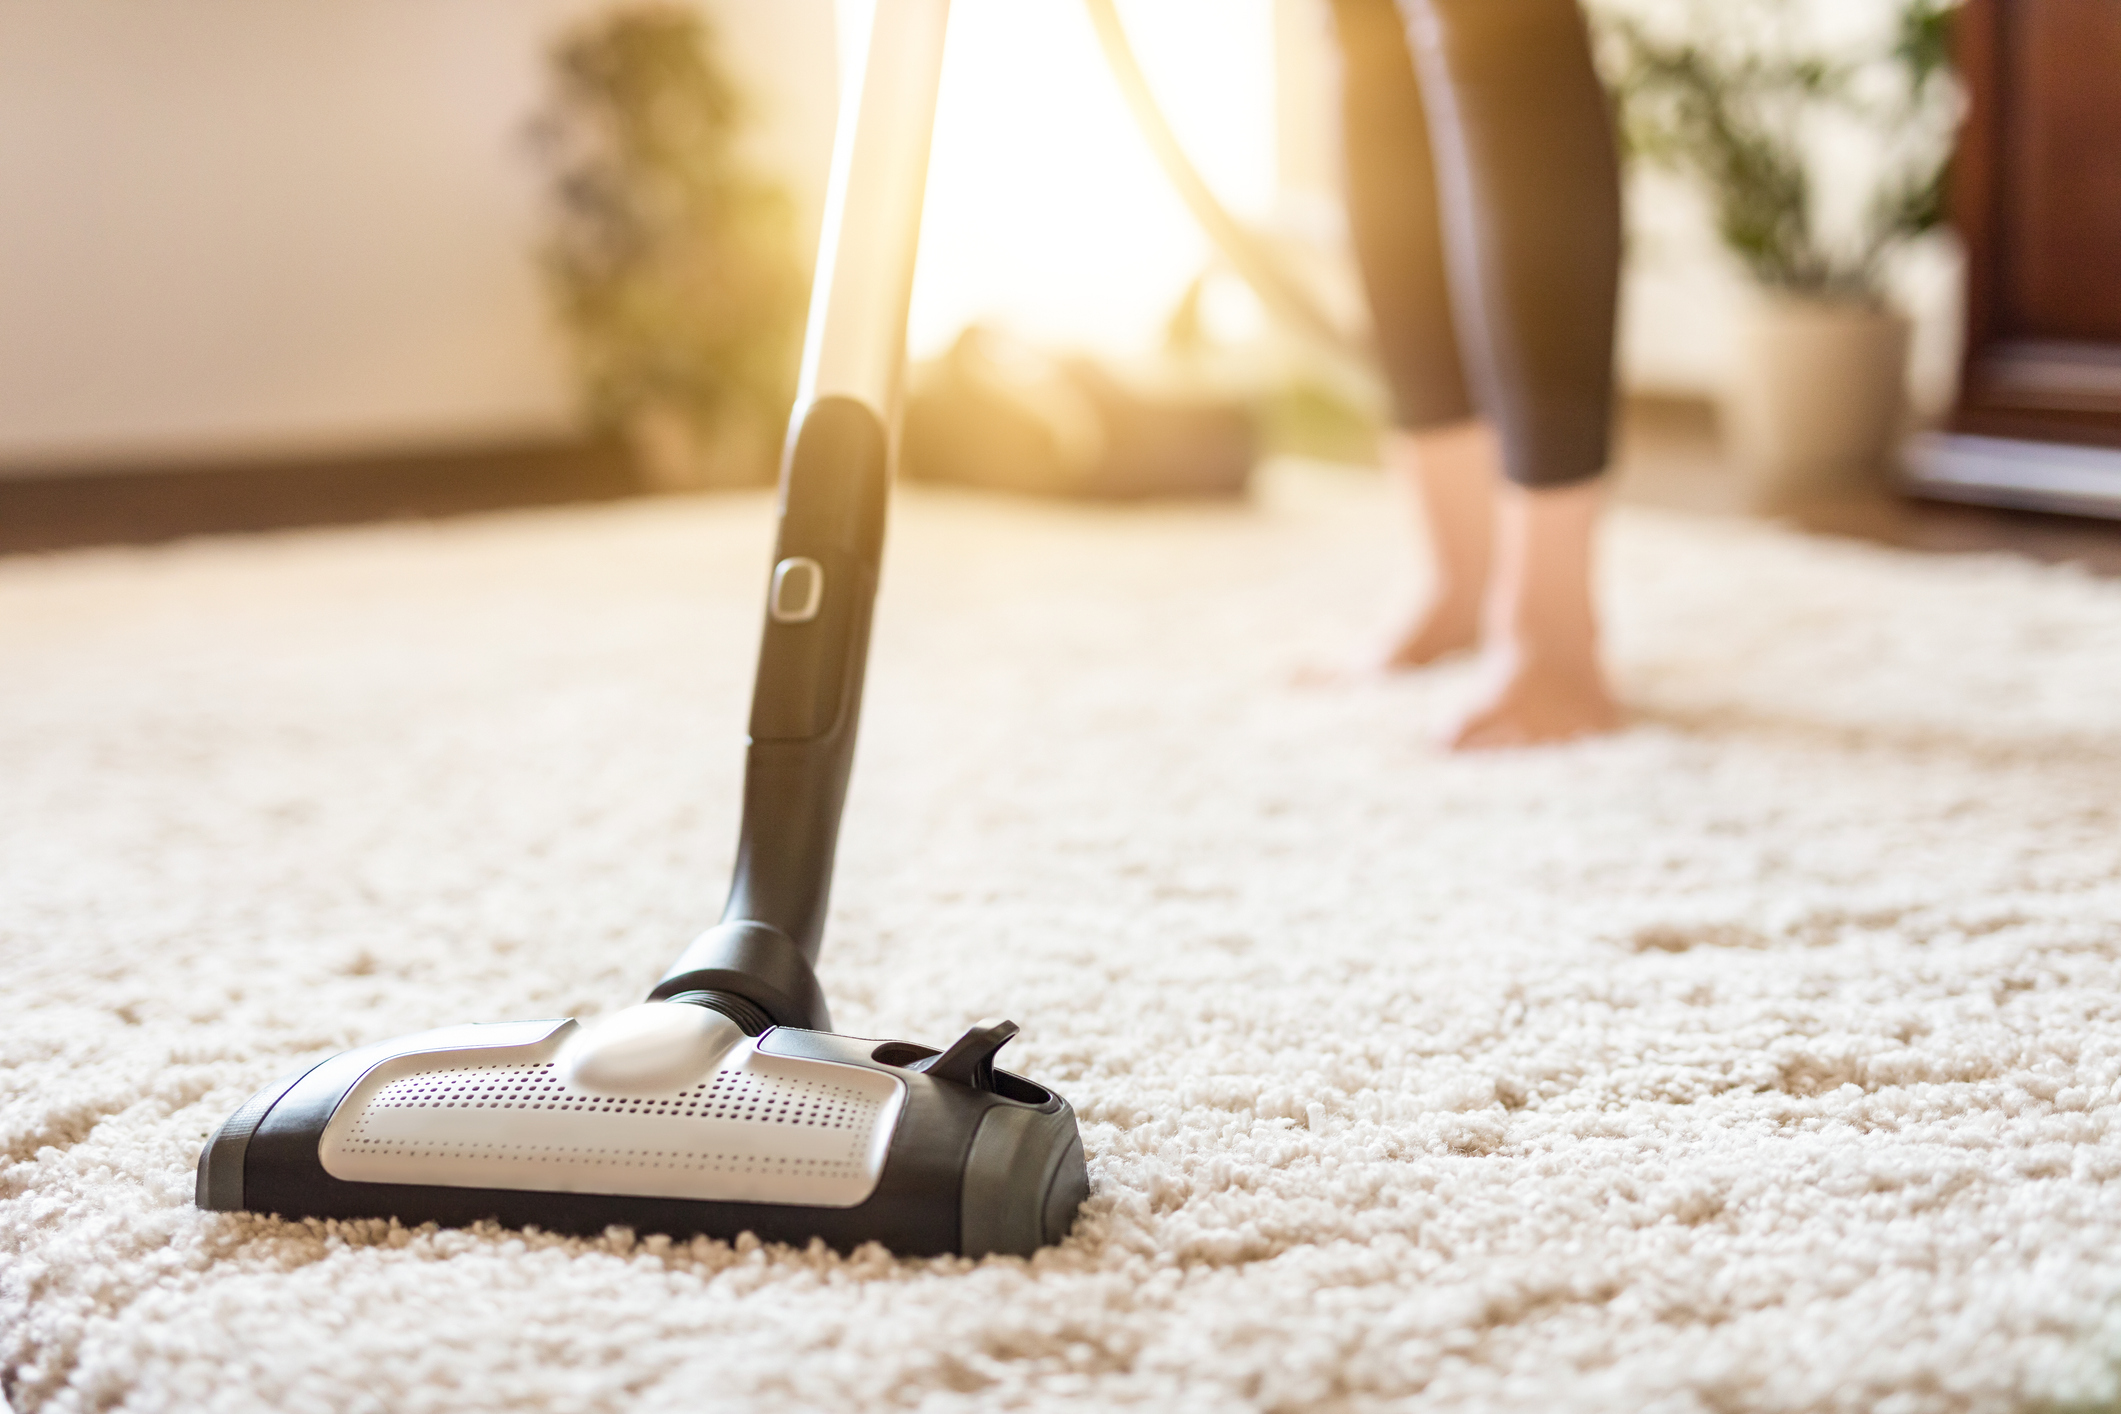 Five new ideas you can use to keep your carpet clean